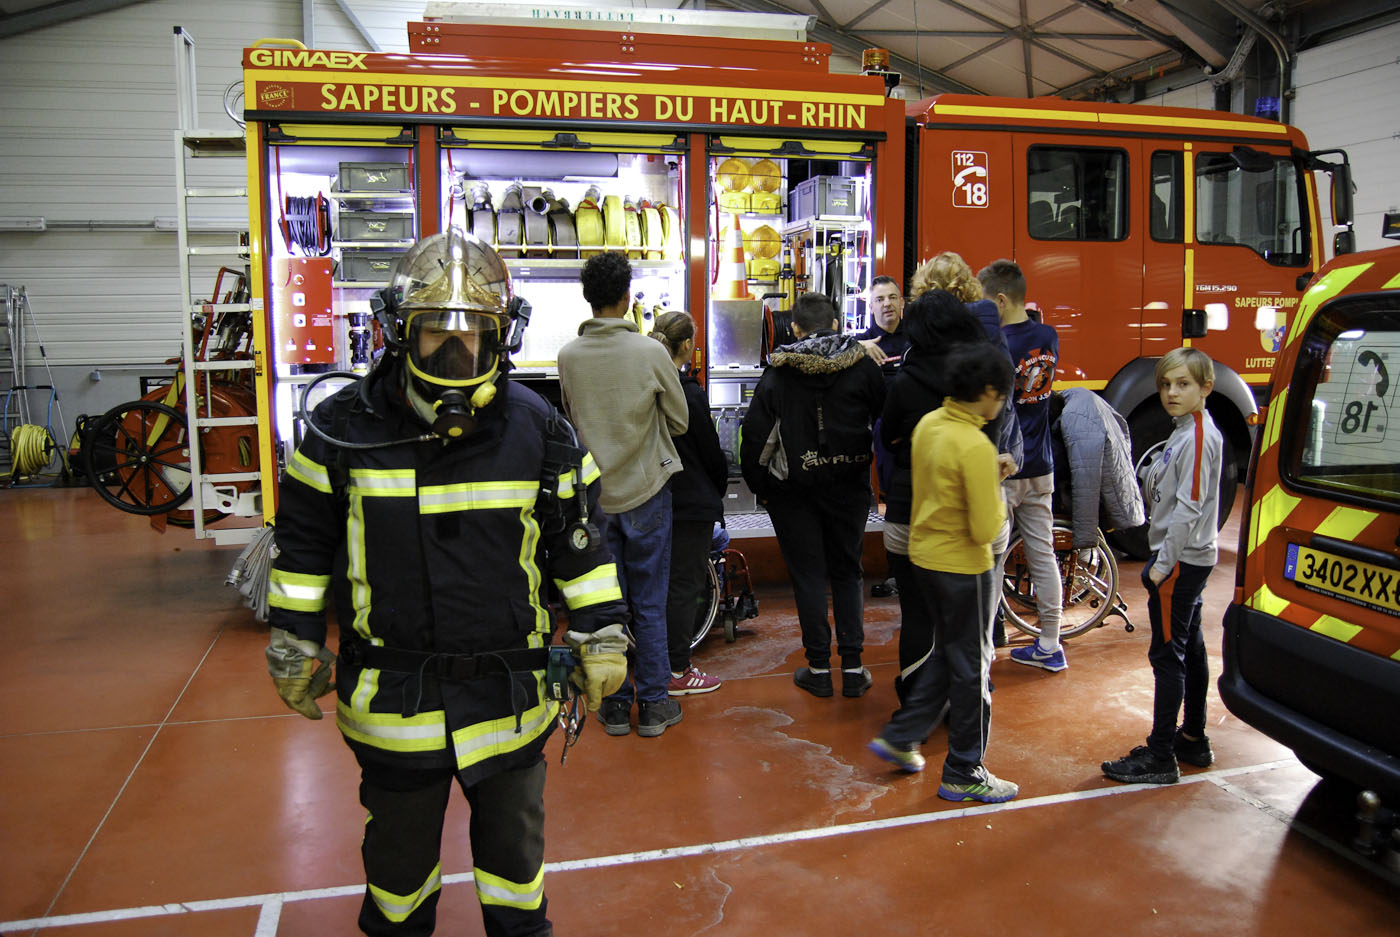 pompiers lutterbach ulis college